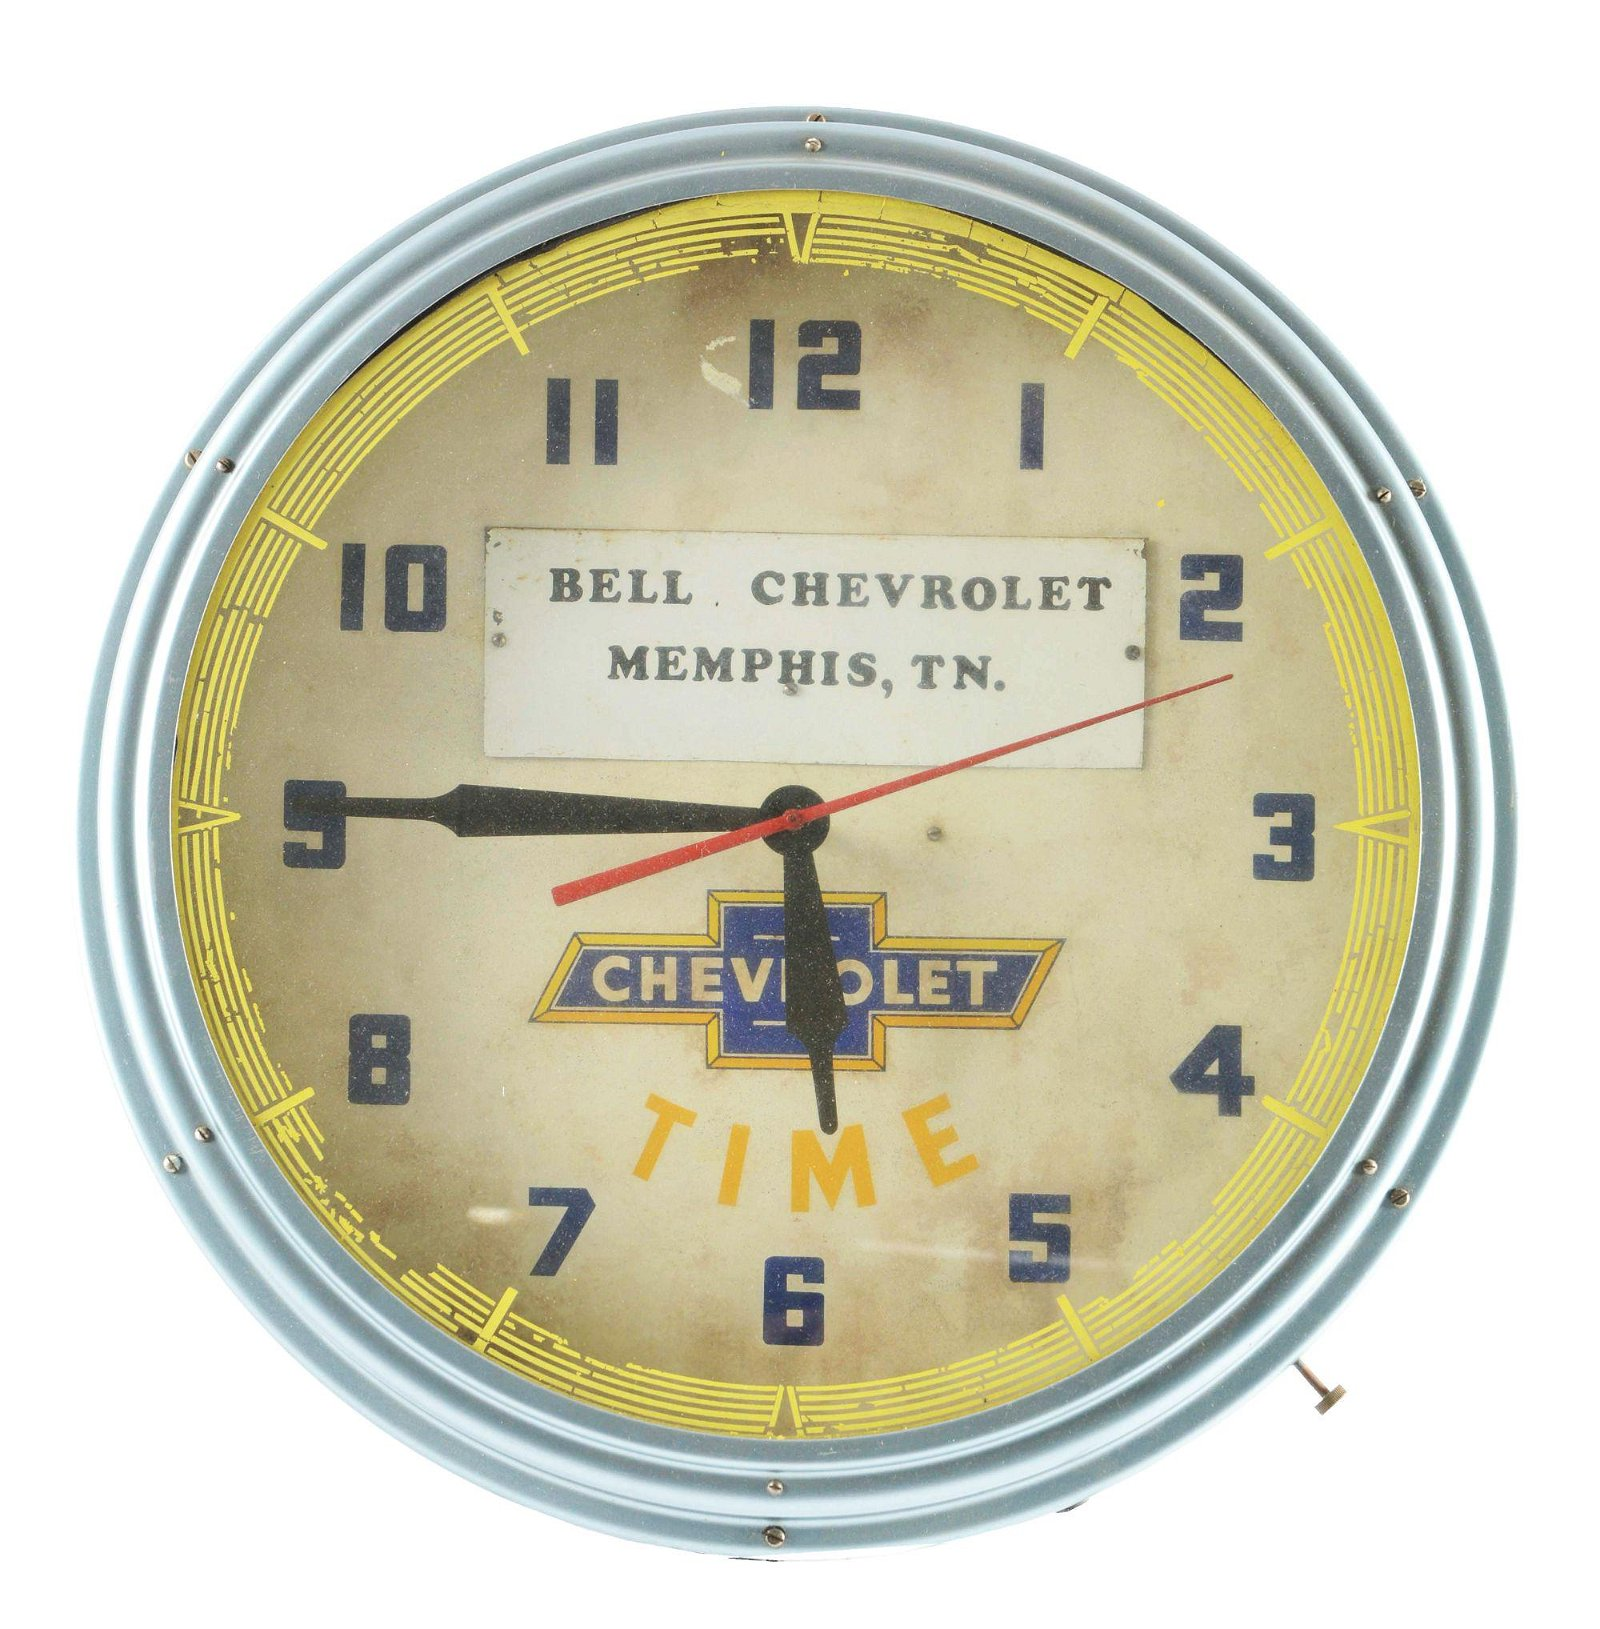 Lackner Neon Clock For Bell Chevrolet.